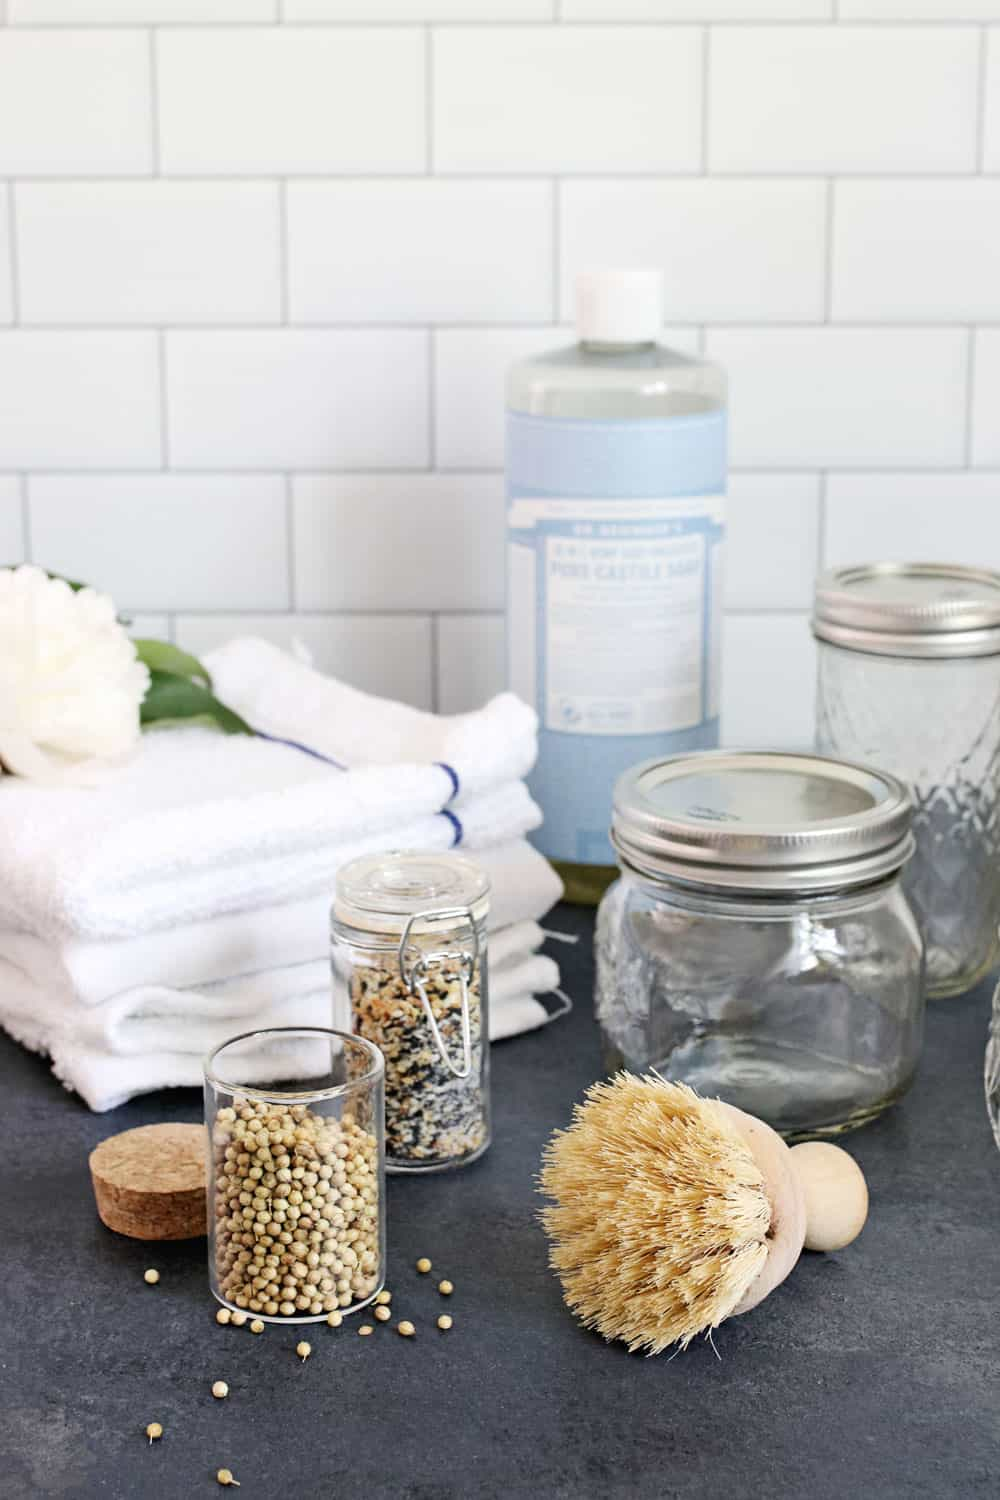 5 Zero Waste Kitchen Swaps That Are Totally Doable Hello Glow